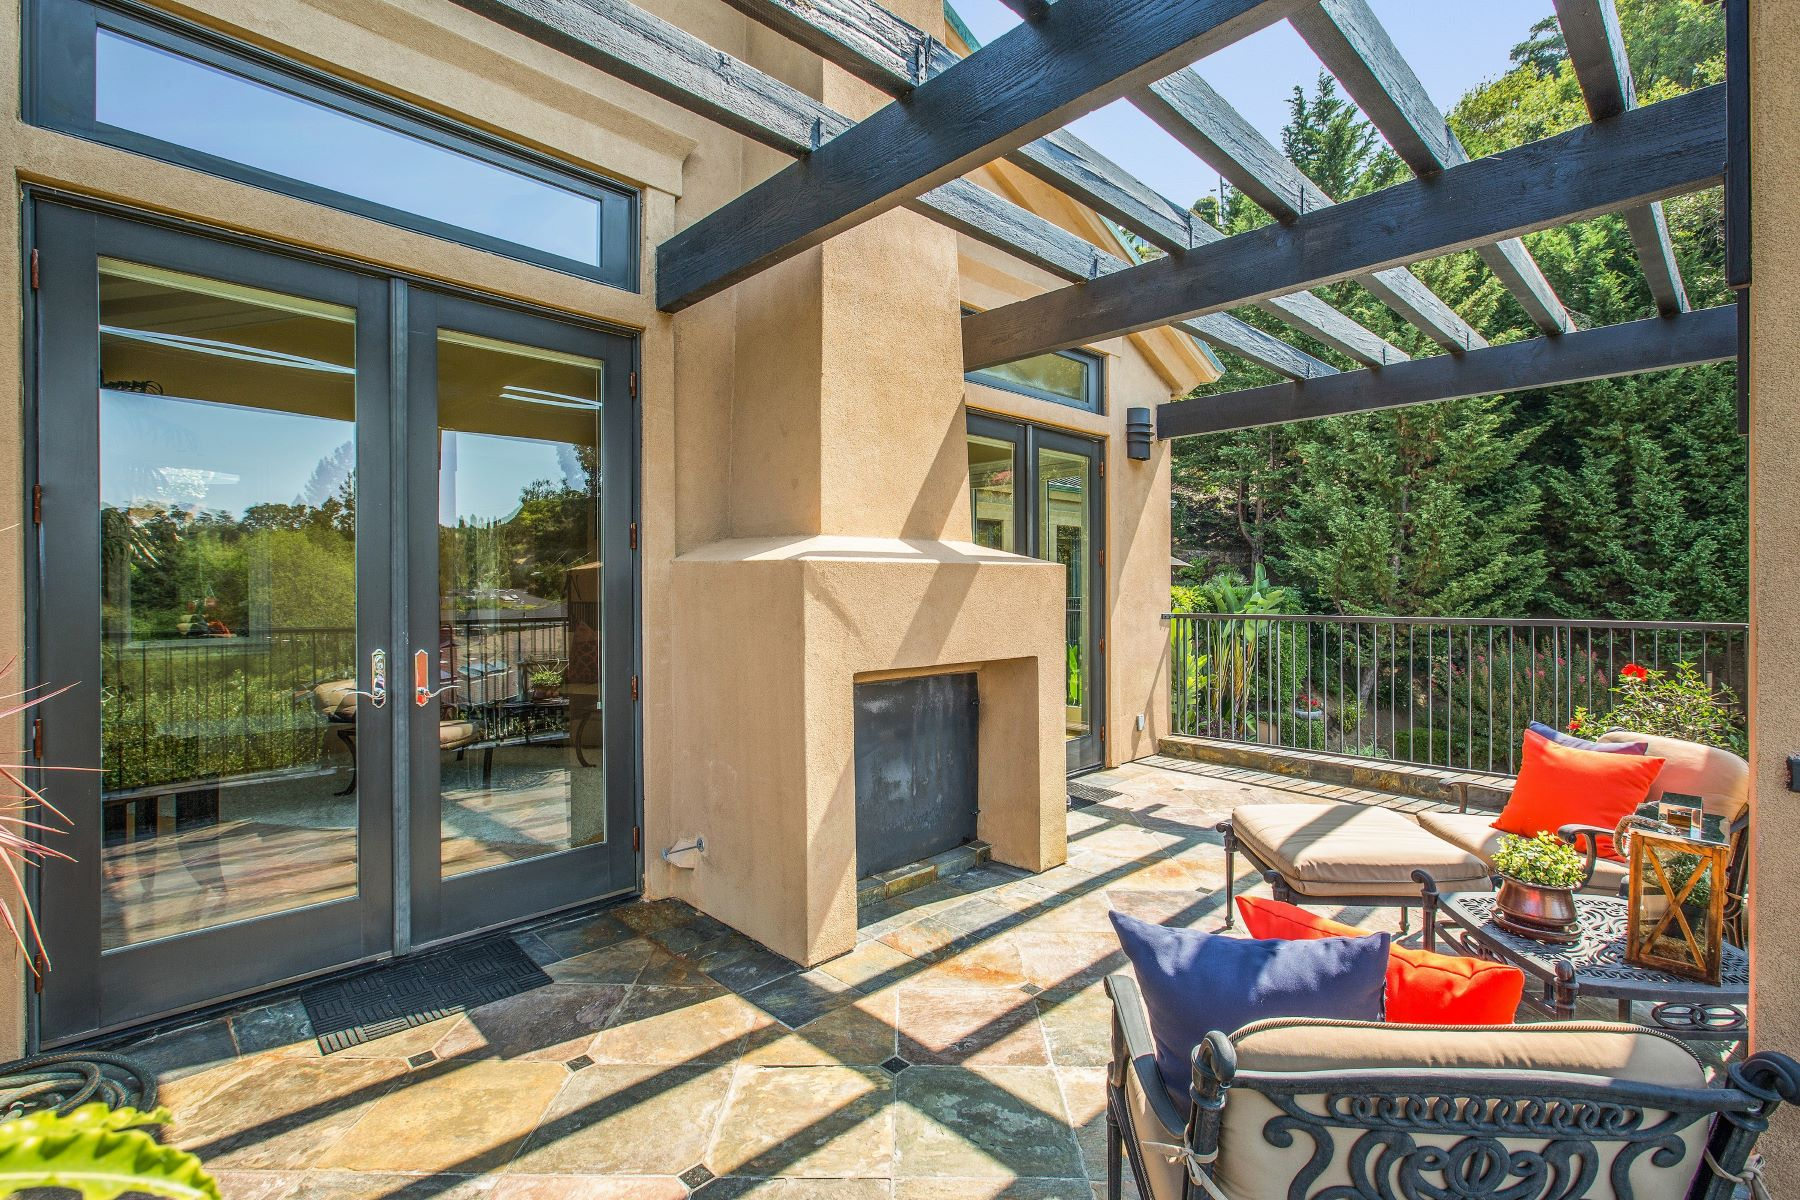 Additional photo for property listing at Gorgeous Turn-Key Home with Views! 129 La Cuesta Greenbrae, California 94904 United States